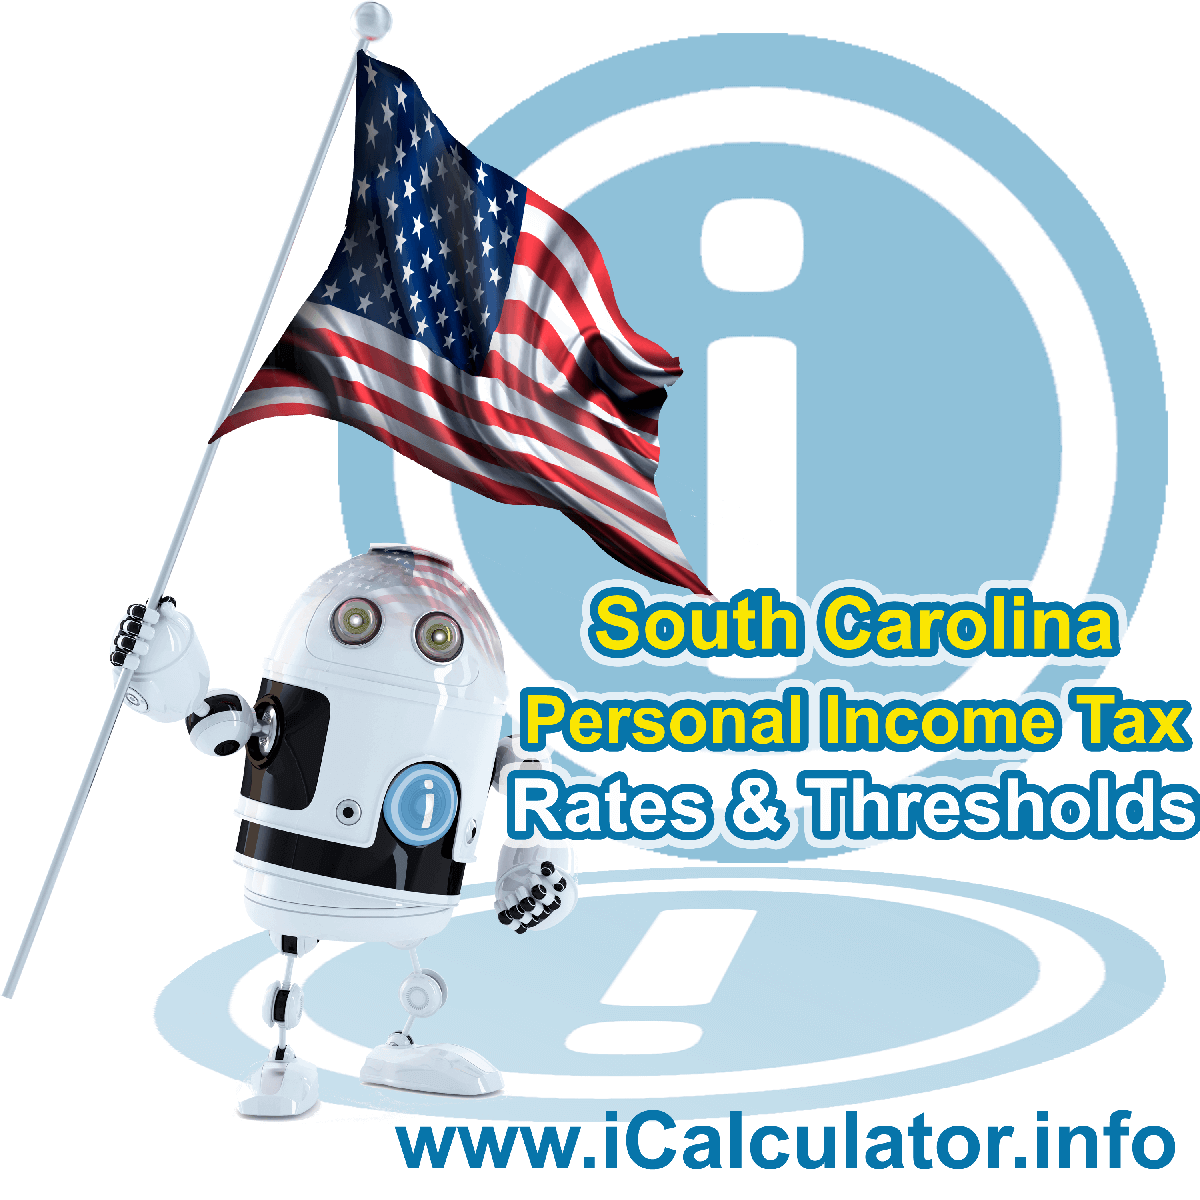 South Carolina State Tax Tables 2014. This image displays details of the South Carolina State Tax Tables for the 2014 tax return year which is provided in support of the 2014 US Tax Calculator